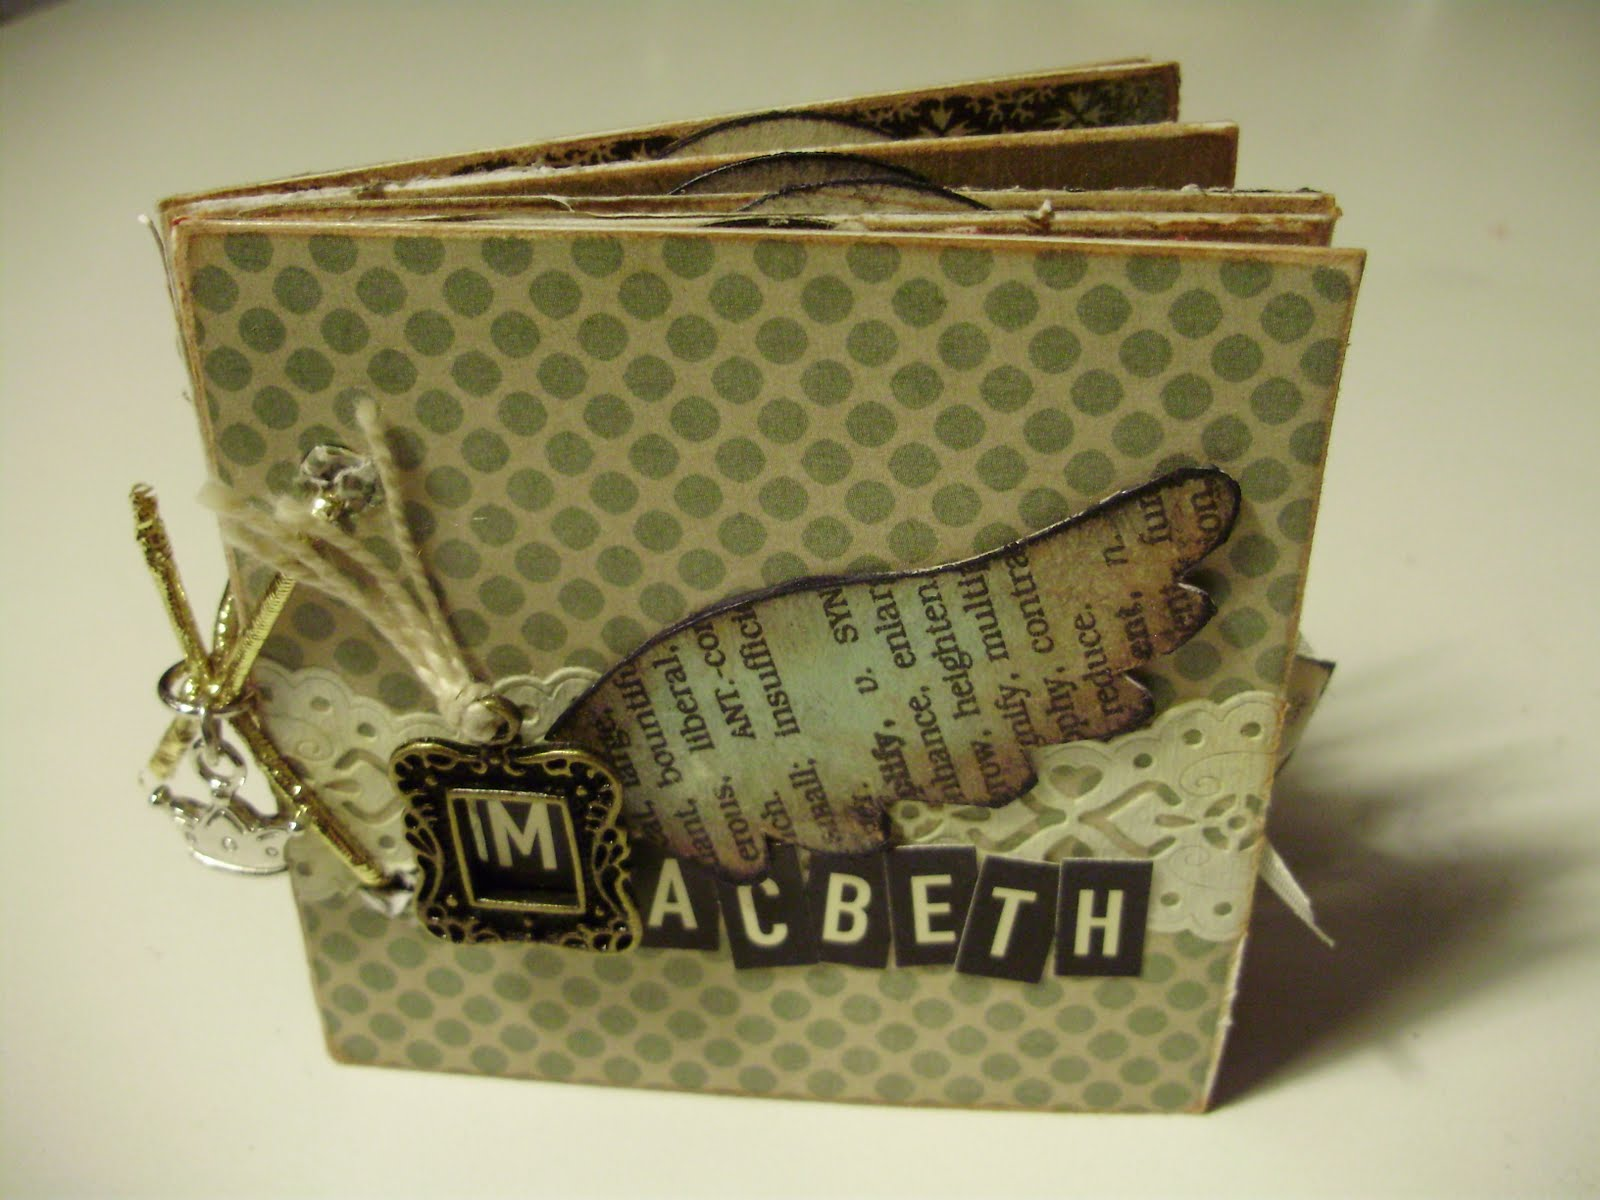 How to make scrapbook for school project - I Kept The Cover Simple But I Just Love How It Turned Out I Used Some Paper Lace A Handmade Wing A Little Dollar Store Frame Charm And Some October